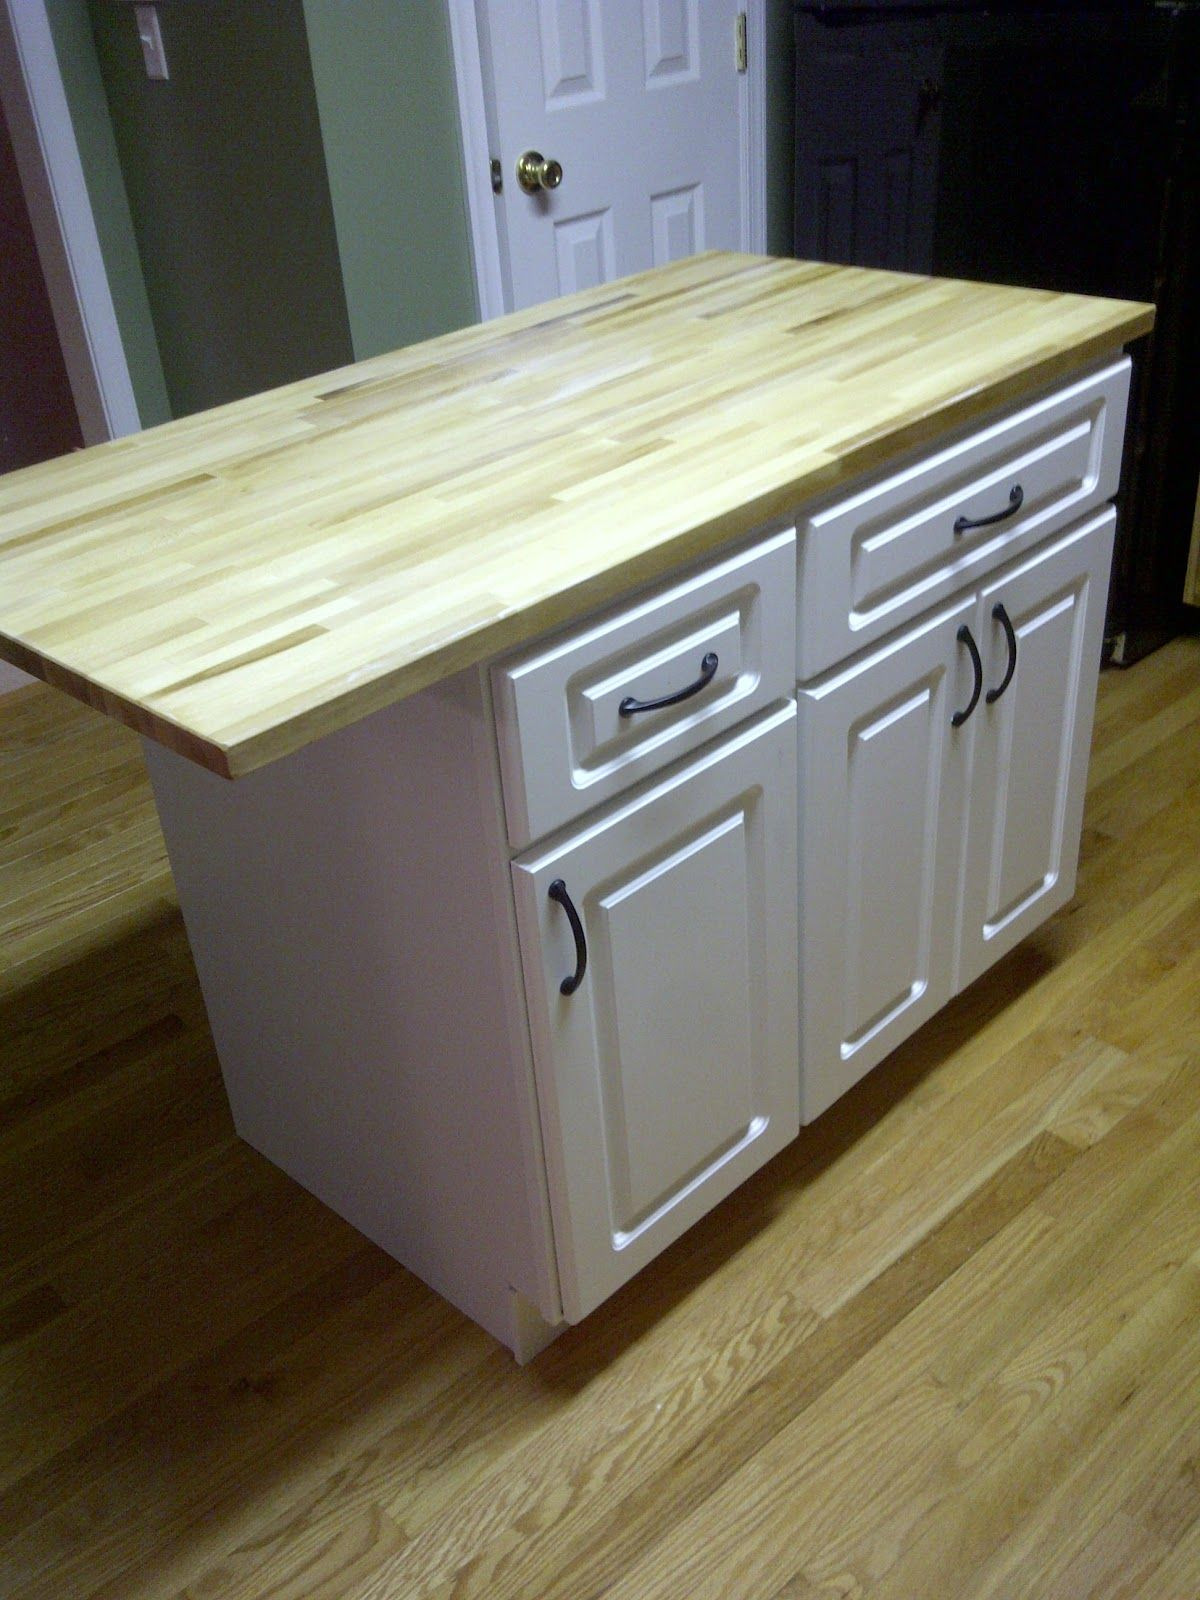 Ordinaire DIY Kitchen Island... Cheap Kitchen Cabinets And A Countertop... Easy To  Put Together! If Only My Kitchen Were Big Enough For An Island! :(